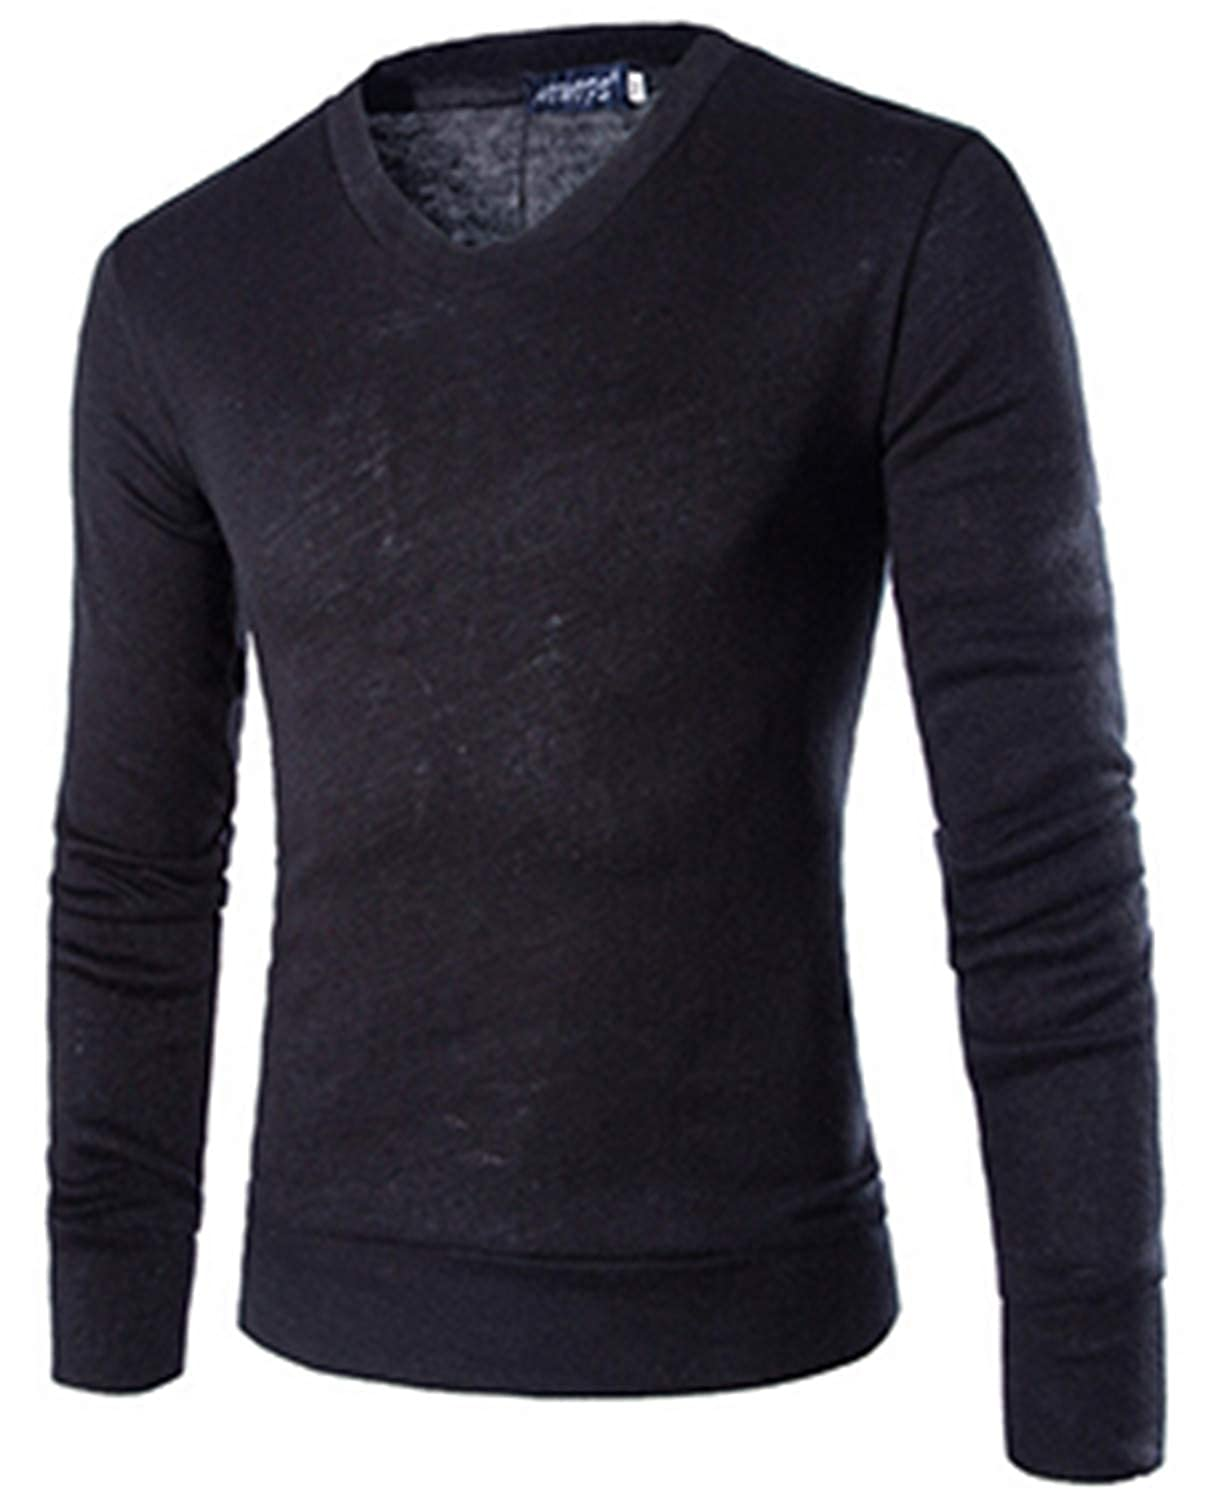 Thadensama Tops Pullovers Men Clothing Preppy Style V Neck Thin Wool Solid Sweater Men Knitted Pullover Sweaters New